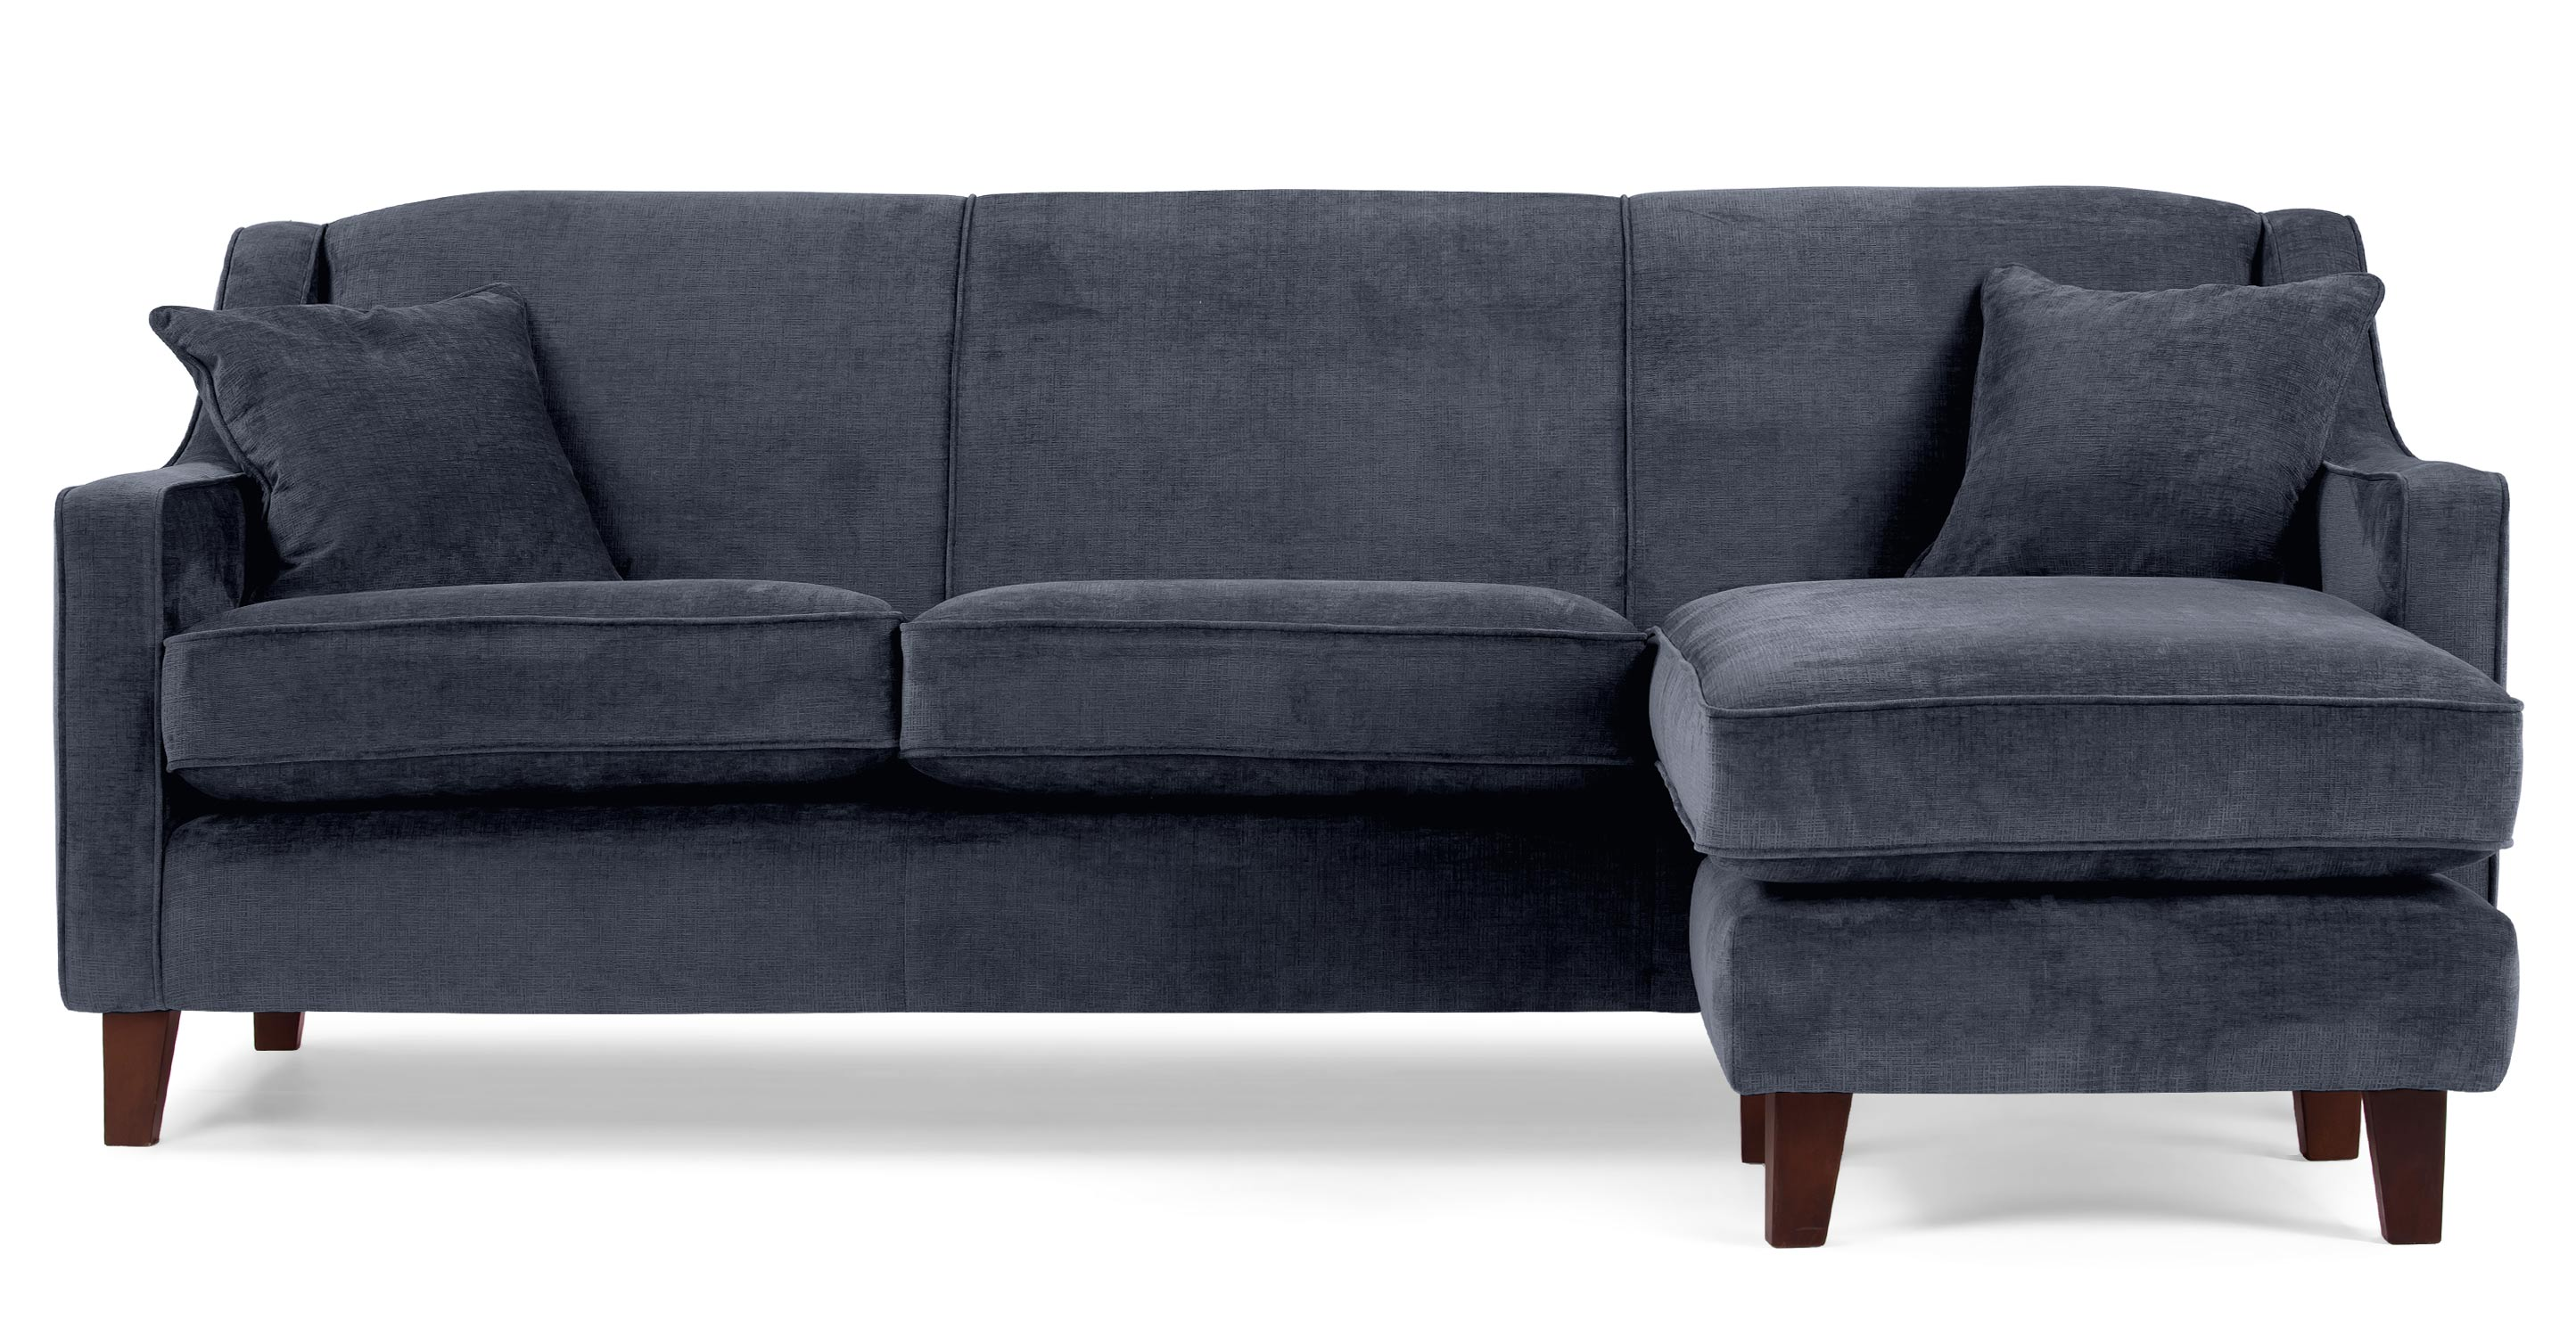 Halston Large Corner Sofa in midnight blue madecom : halstonrightcornersofabluelb1 from www.made.com size 2889 x 1500 jpeg 427kB